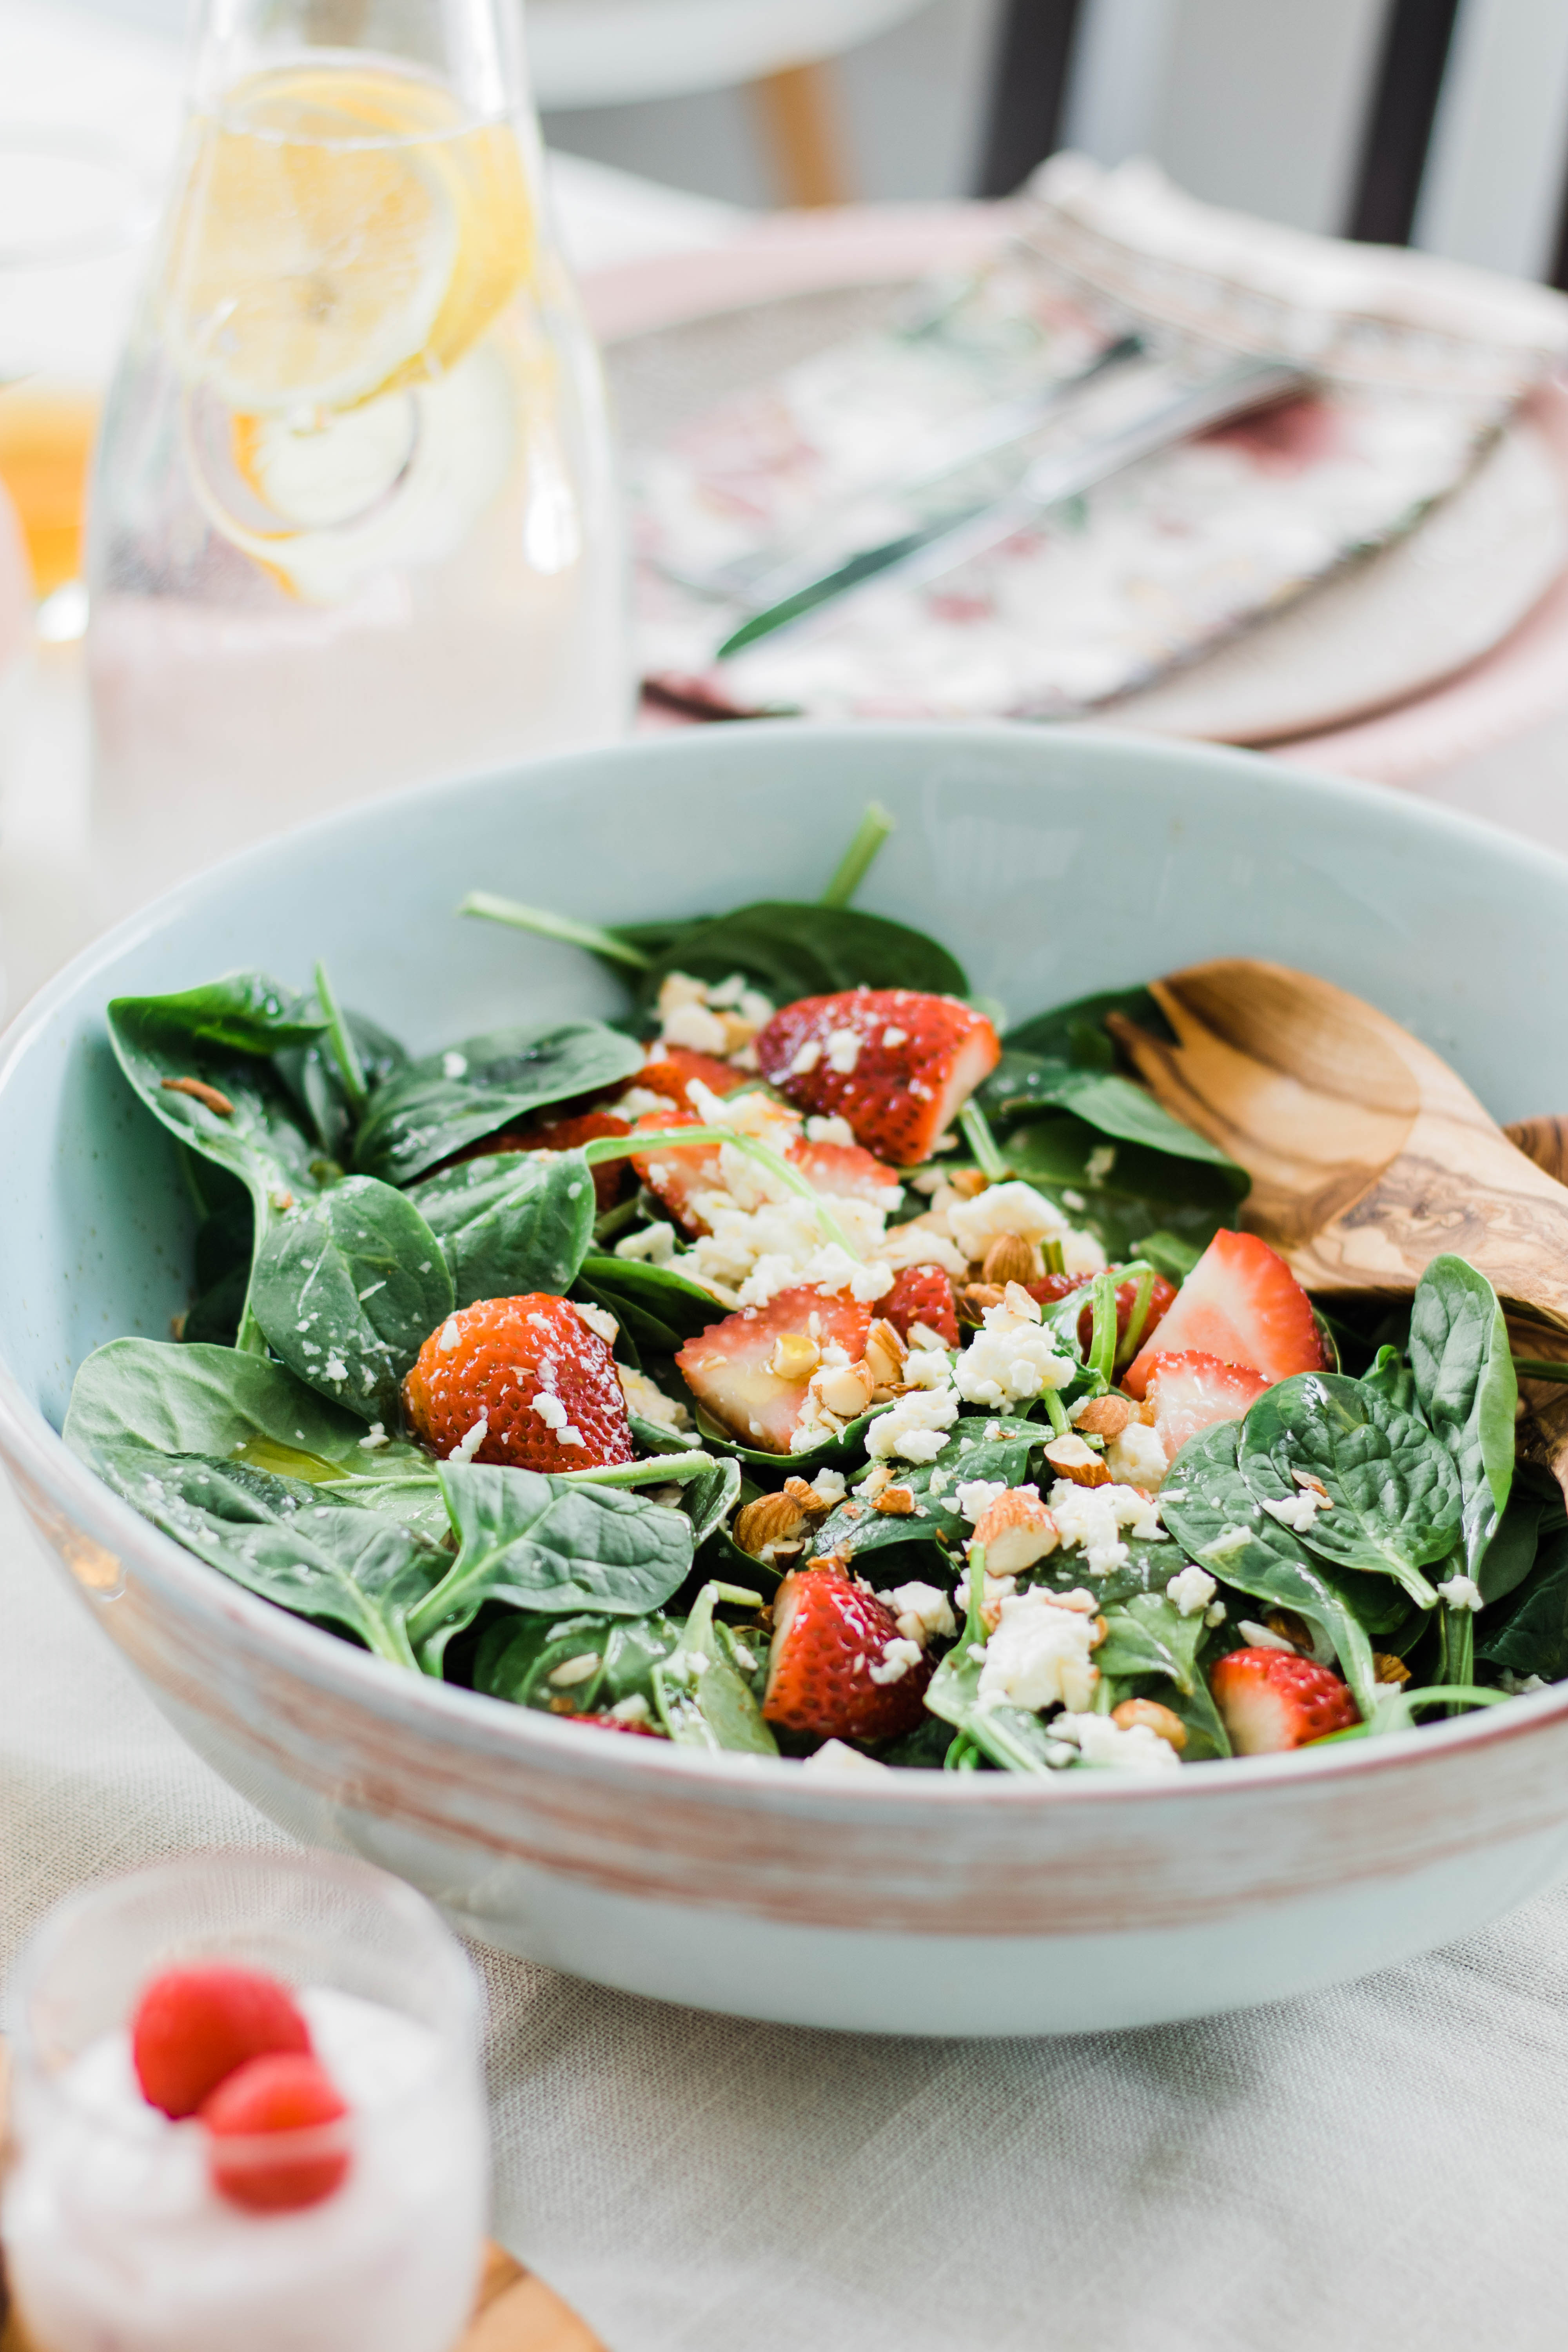 Strawberry Spinach Salad with Balsamic Dressing #salad #healthyrecipes #strawberry #dinnerrecipes